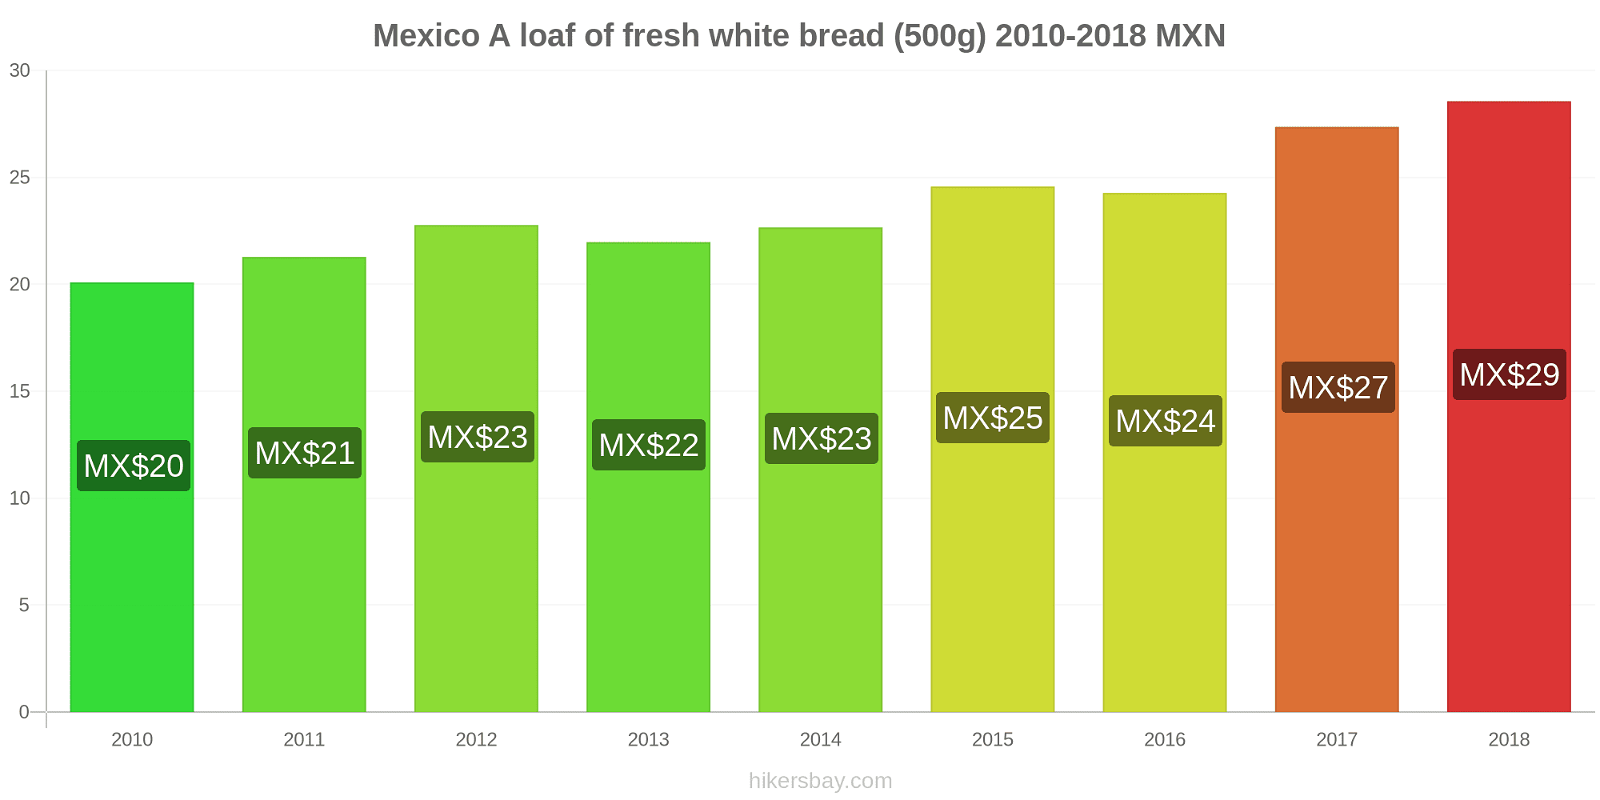 Mexico price changes A loaf of fresh white bread (500g) hikersbay.com